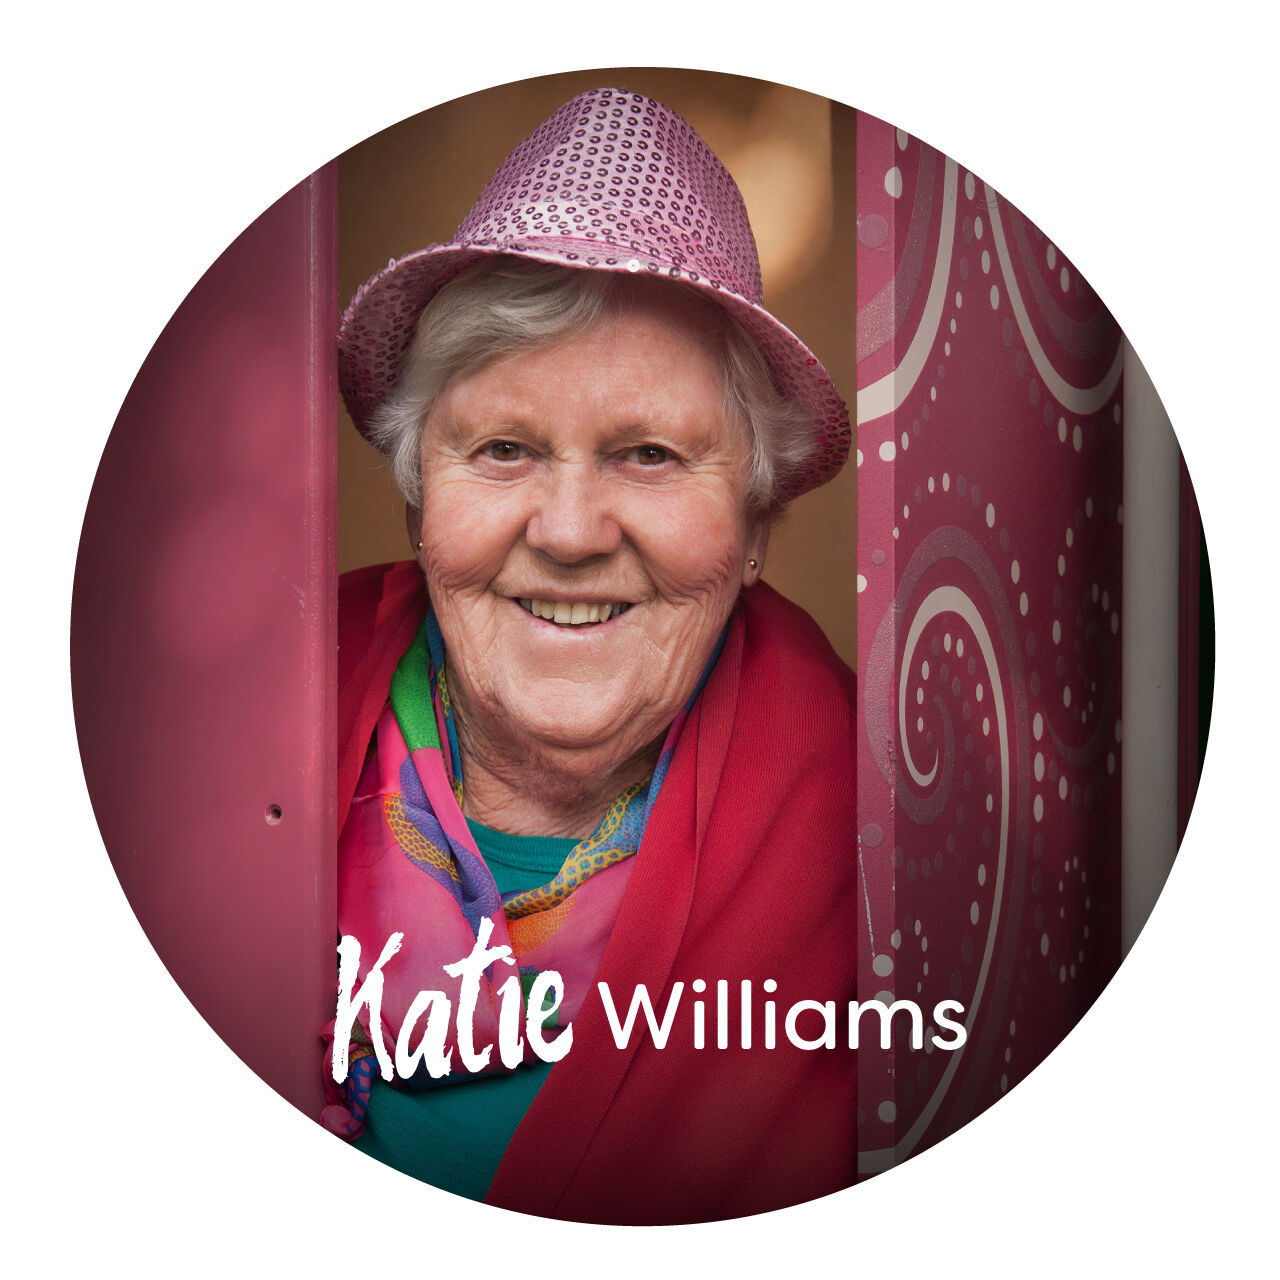 A picture of Katie Williams